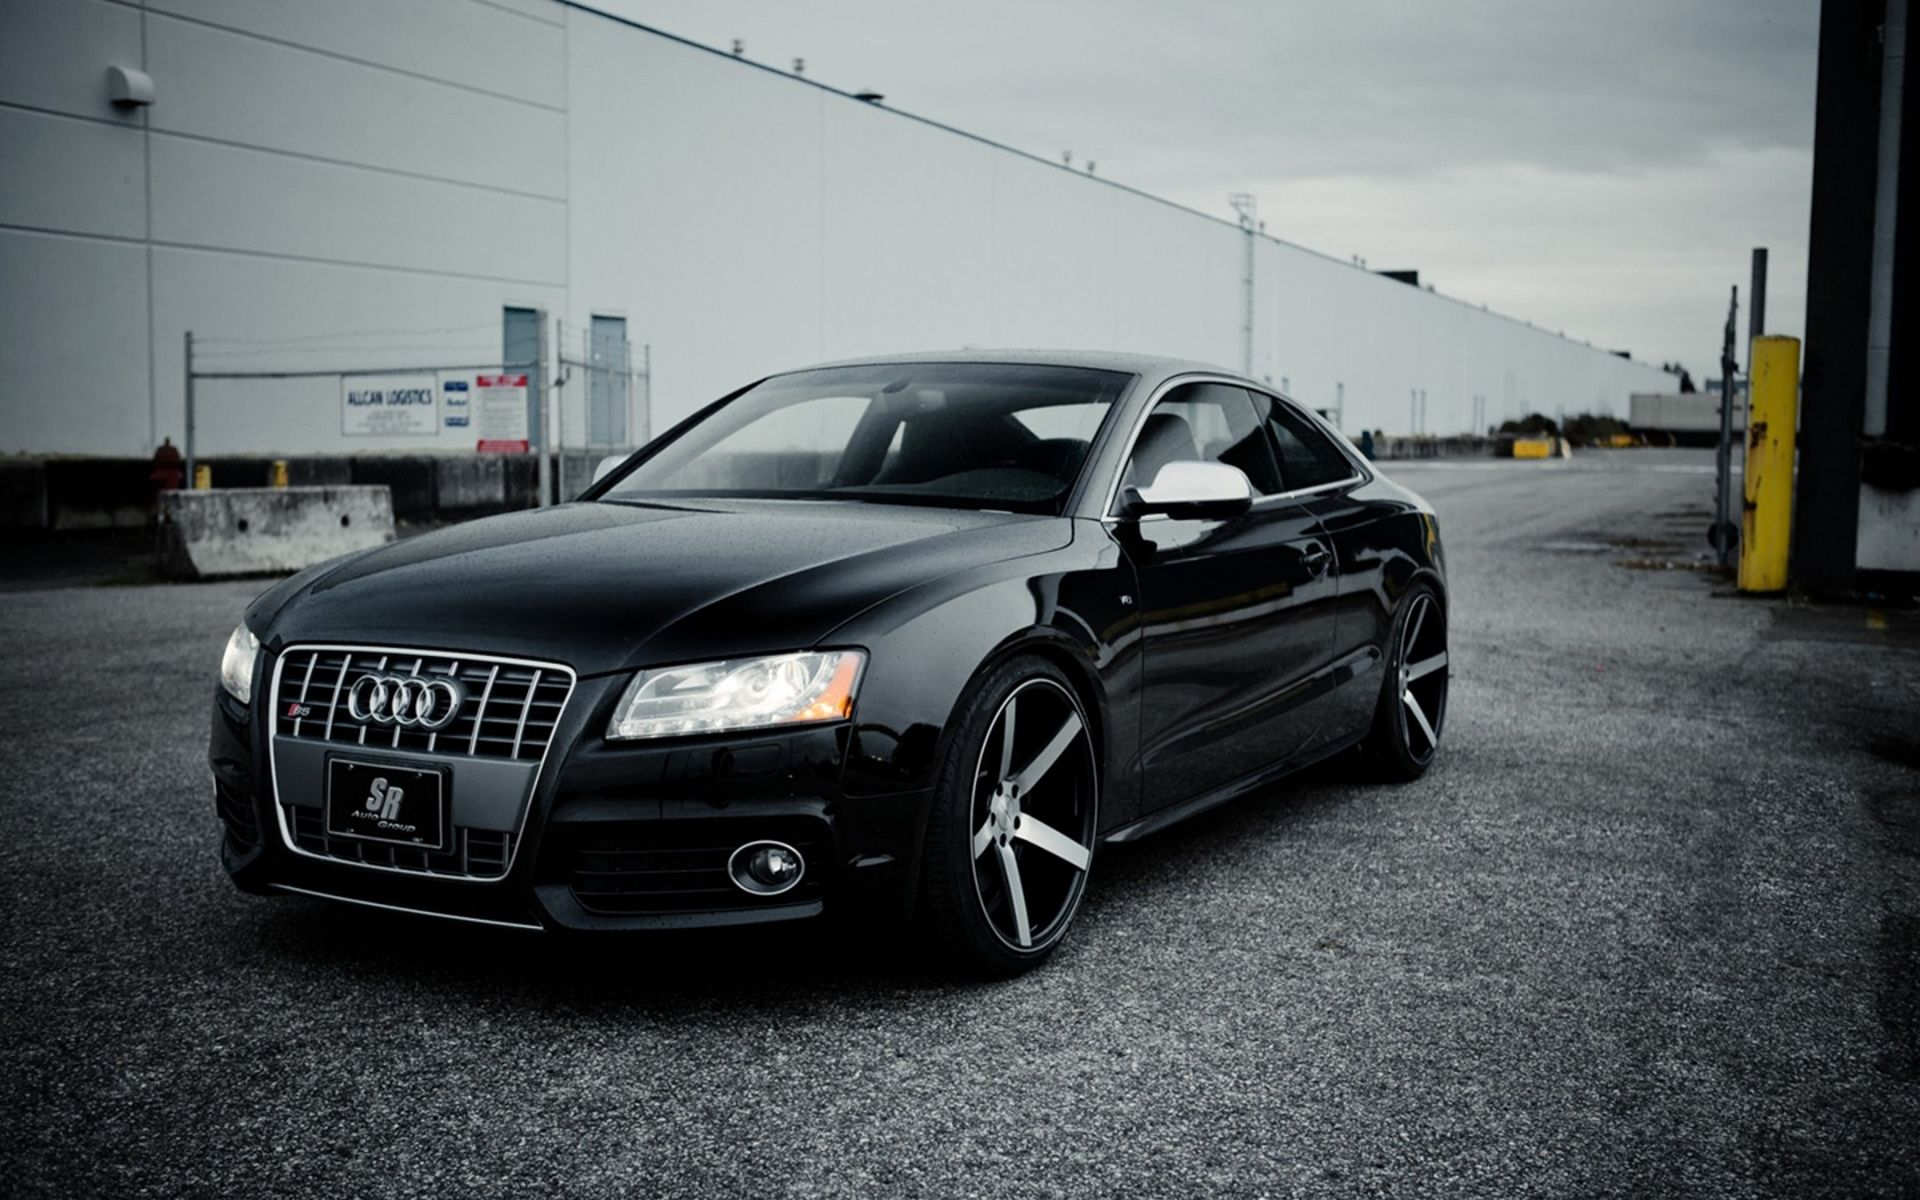 Free Audi Car Full Hd Wallpapers Pics Llection Of On Androids